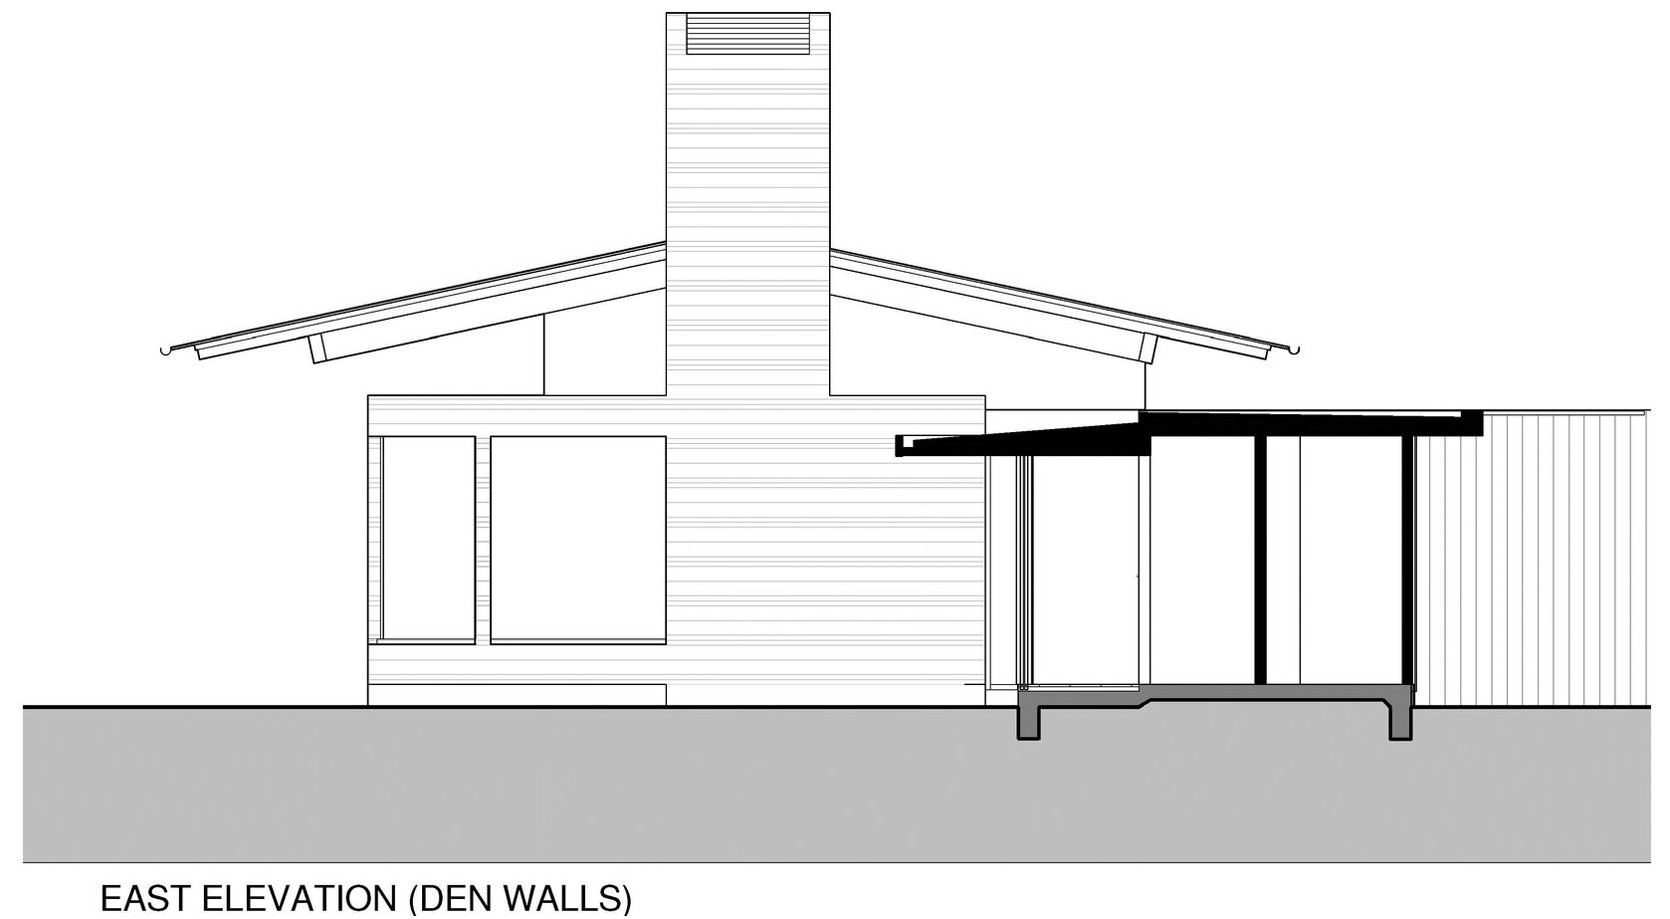 East Elevation, Den Walls, Wairau Valley House in Rapaura, New Zealand by Parsonson Architects